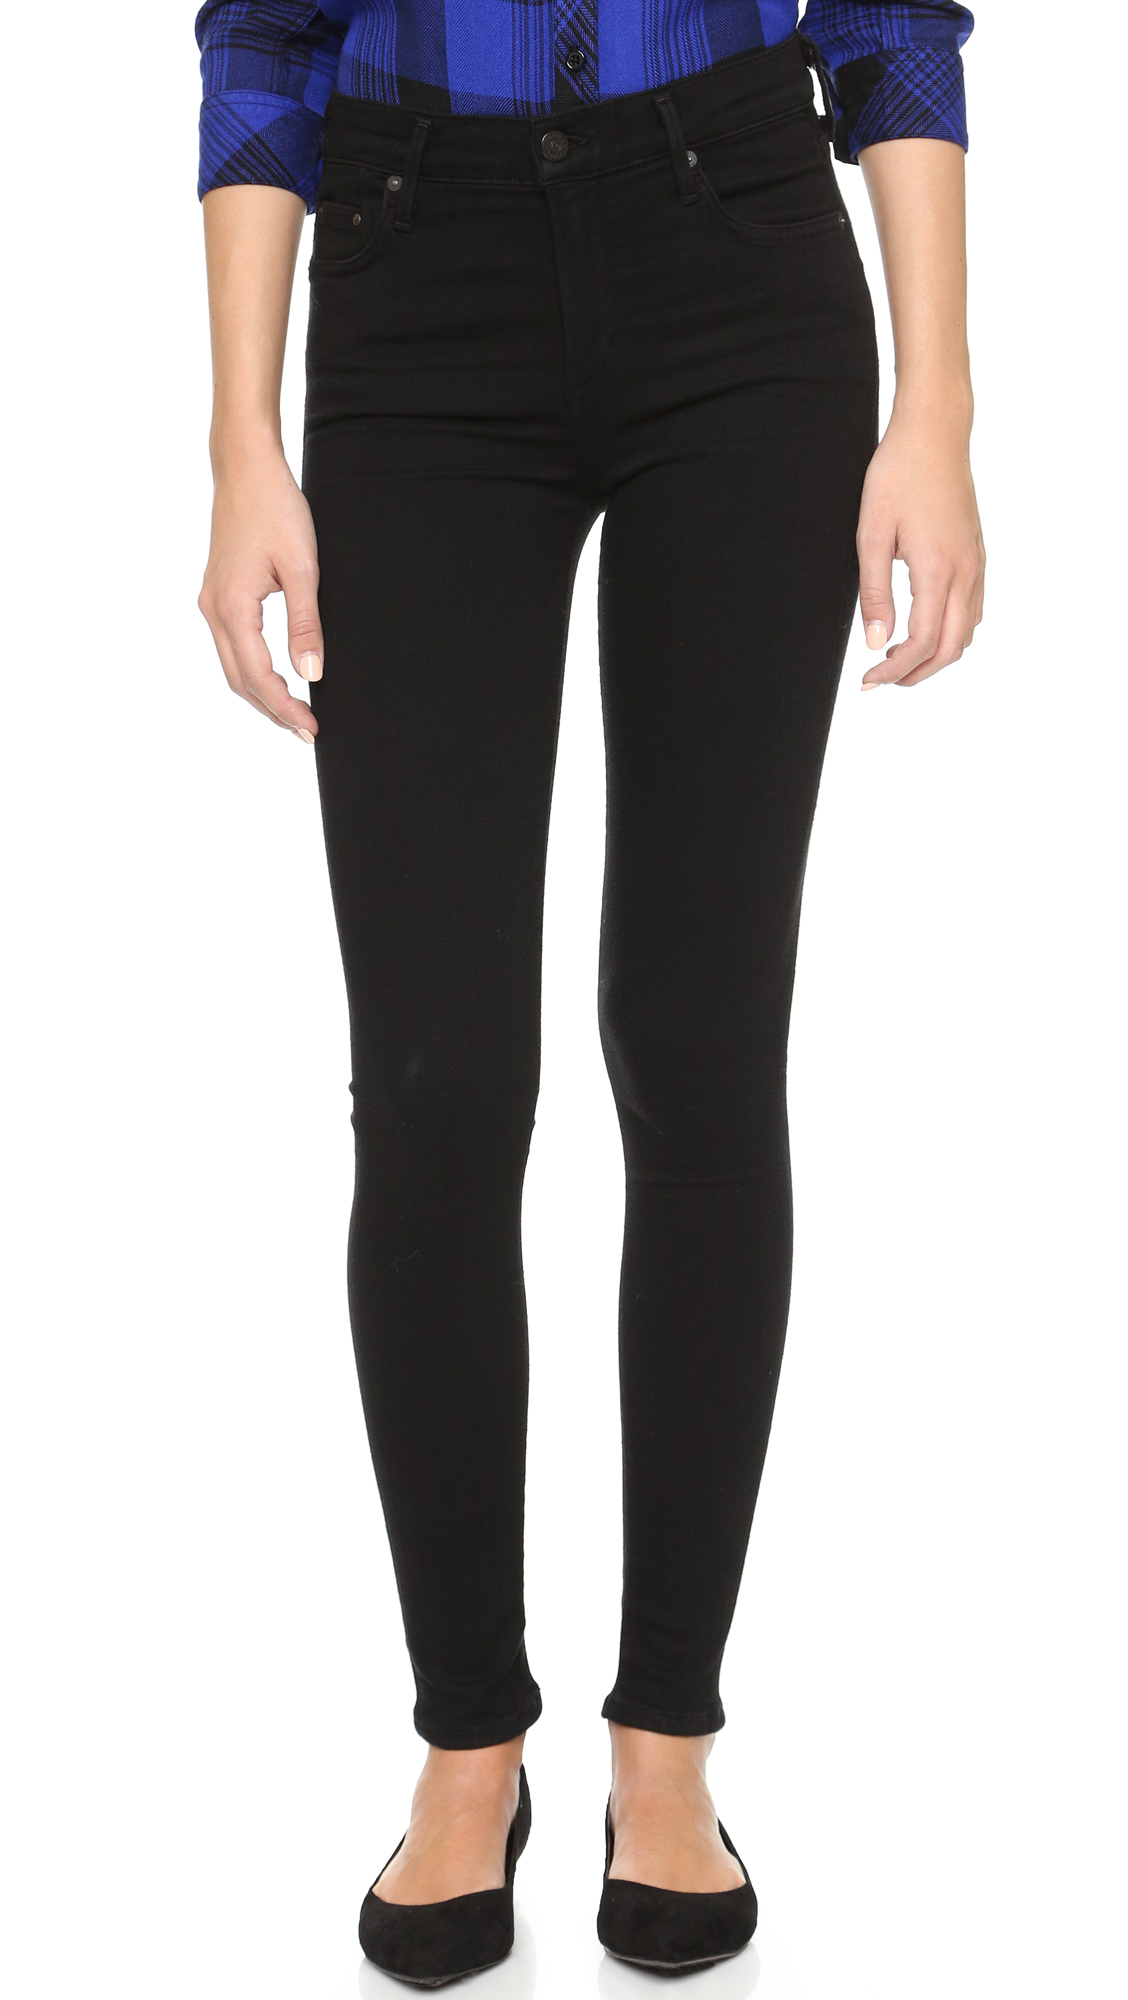 Citizens Of Humanity Rocket High Rise Skinny Jeans - All Black at Shopbop